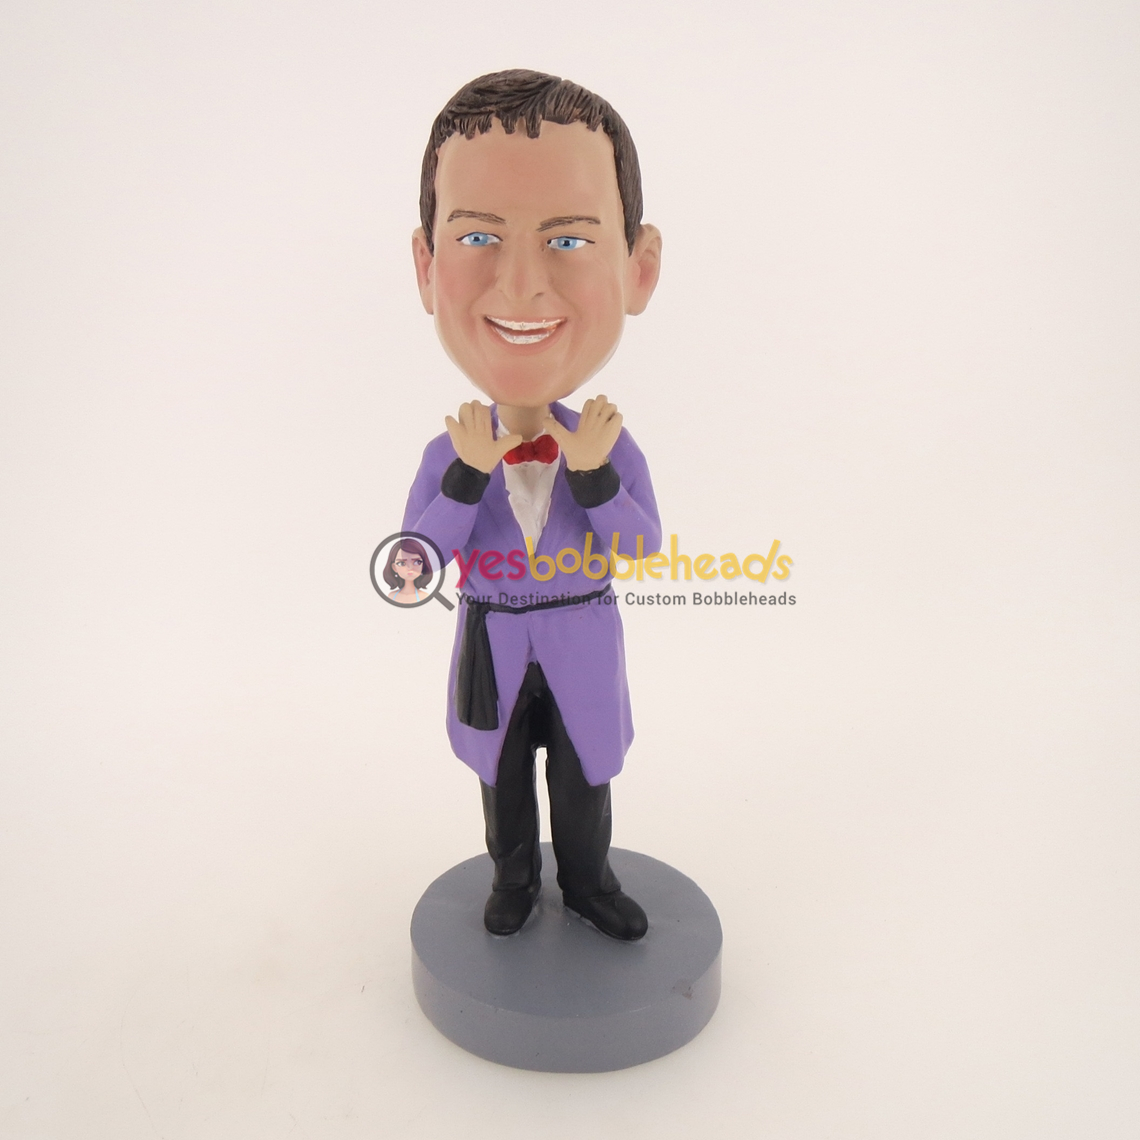 Picture of Custom Bobblehead Doll: Magician Man